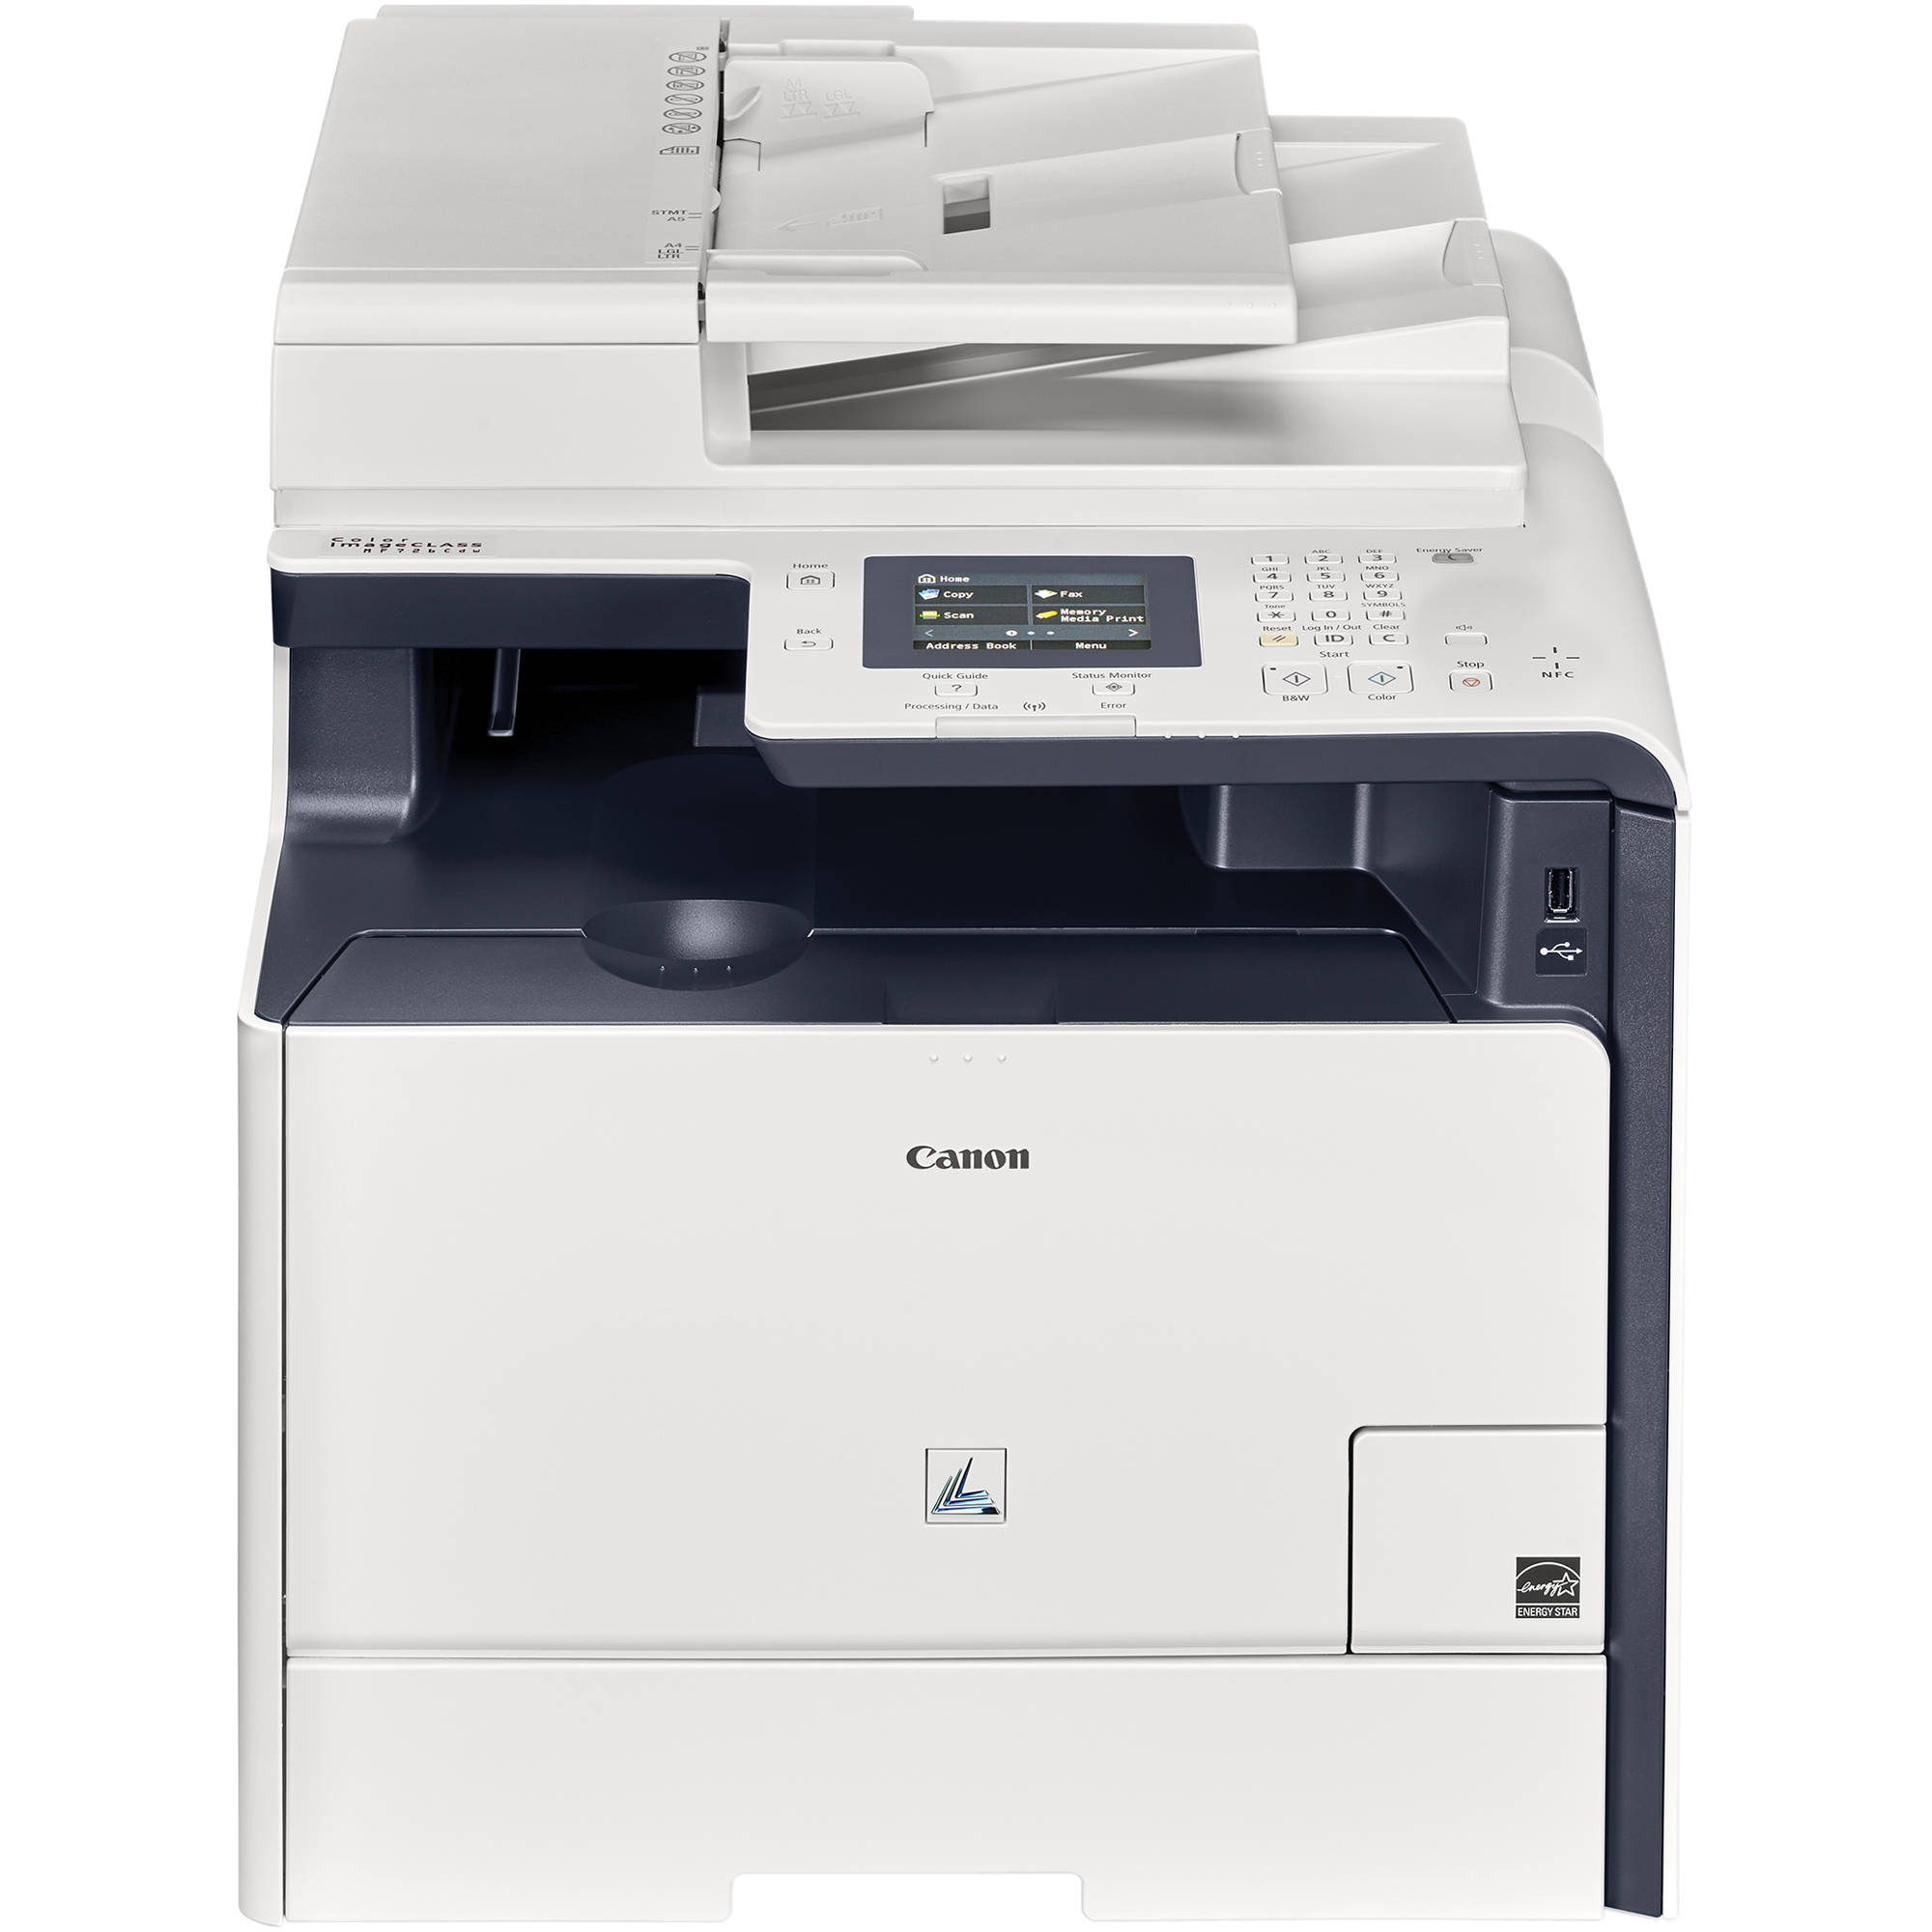 Canon ImageCLASS MF726Cdw All In One Color Laser